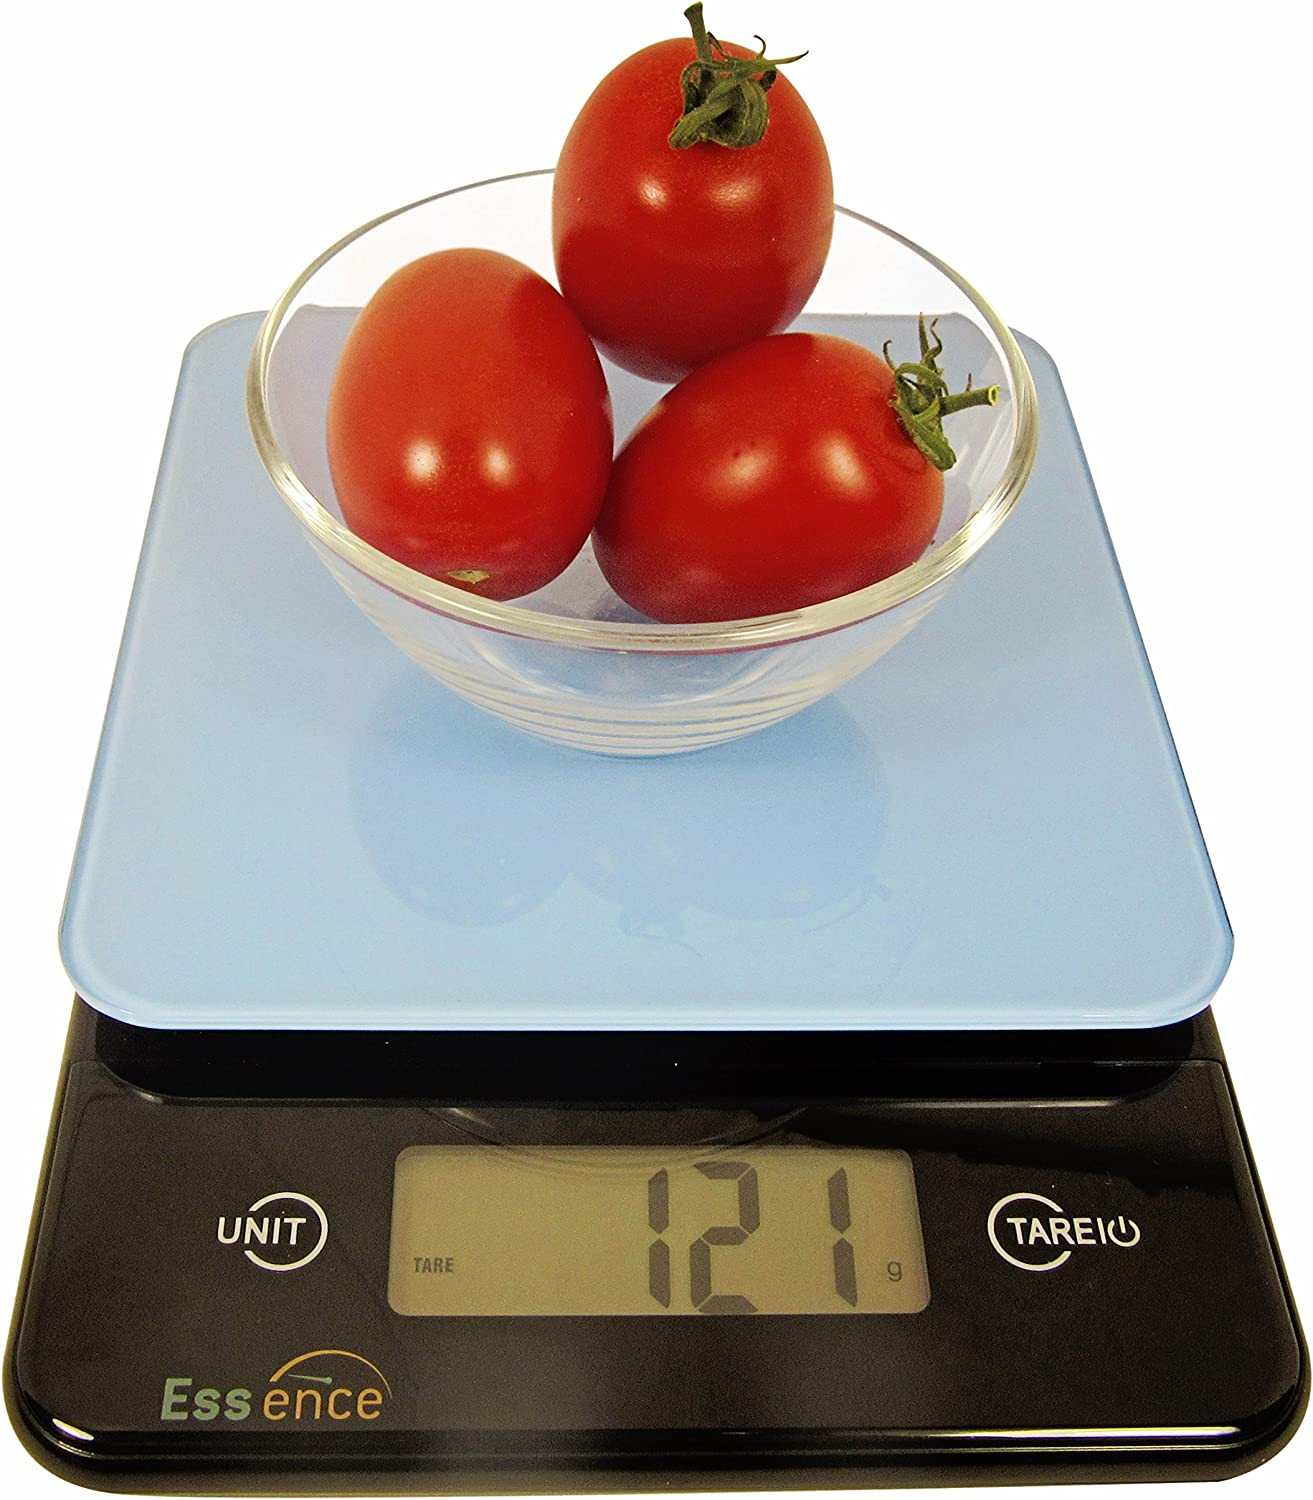 ESSENCE Digital Kitchen and Food Scale, Silver and Blue – No-Hassle Replacement Guarantee (Blue)